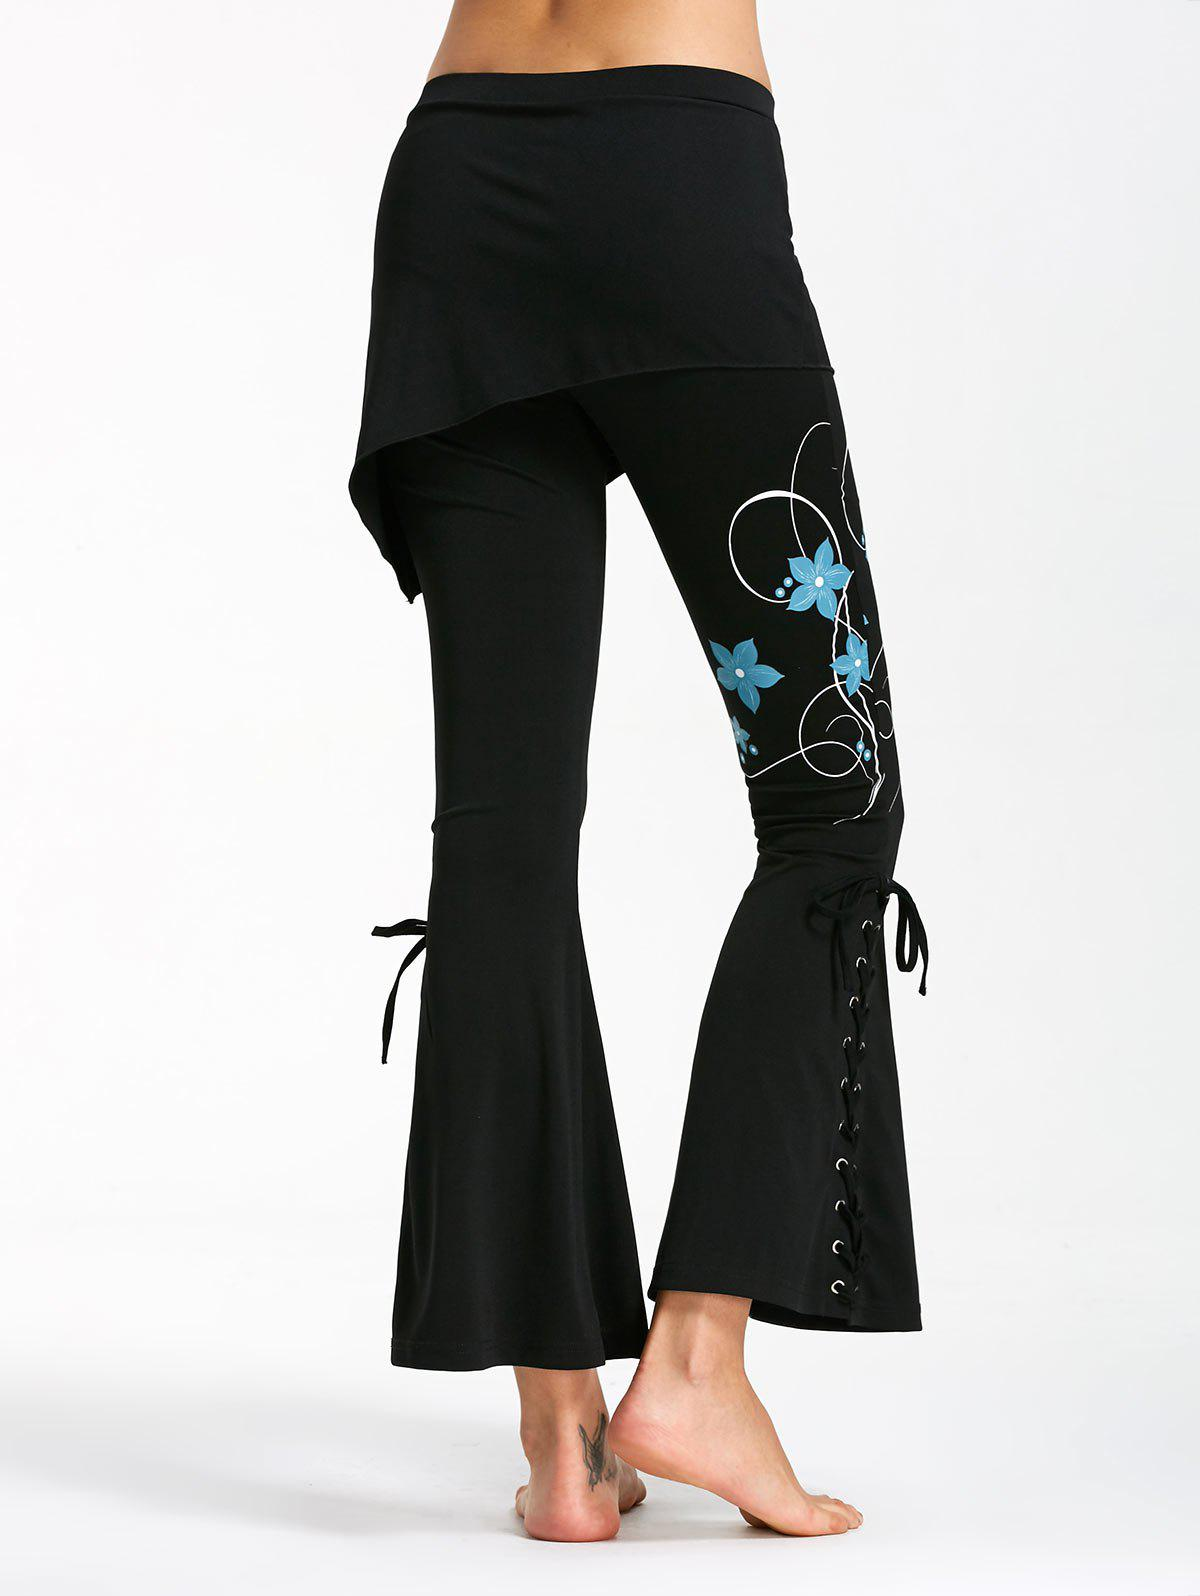 Criss Cross Bottom Print Flare Pants - Noir et Bleu XL